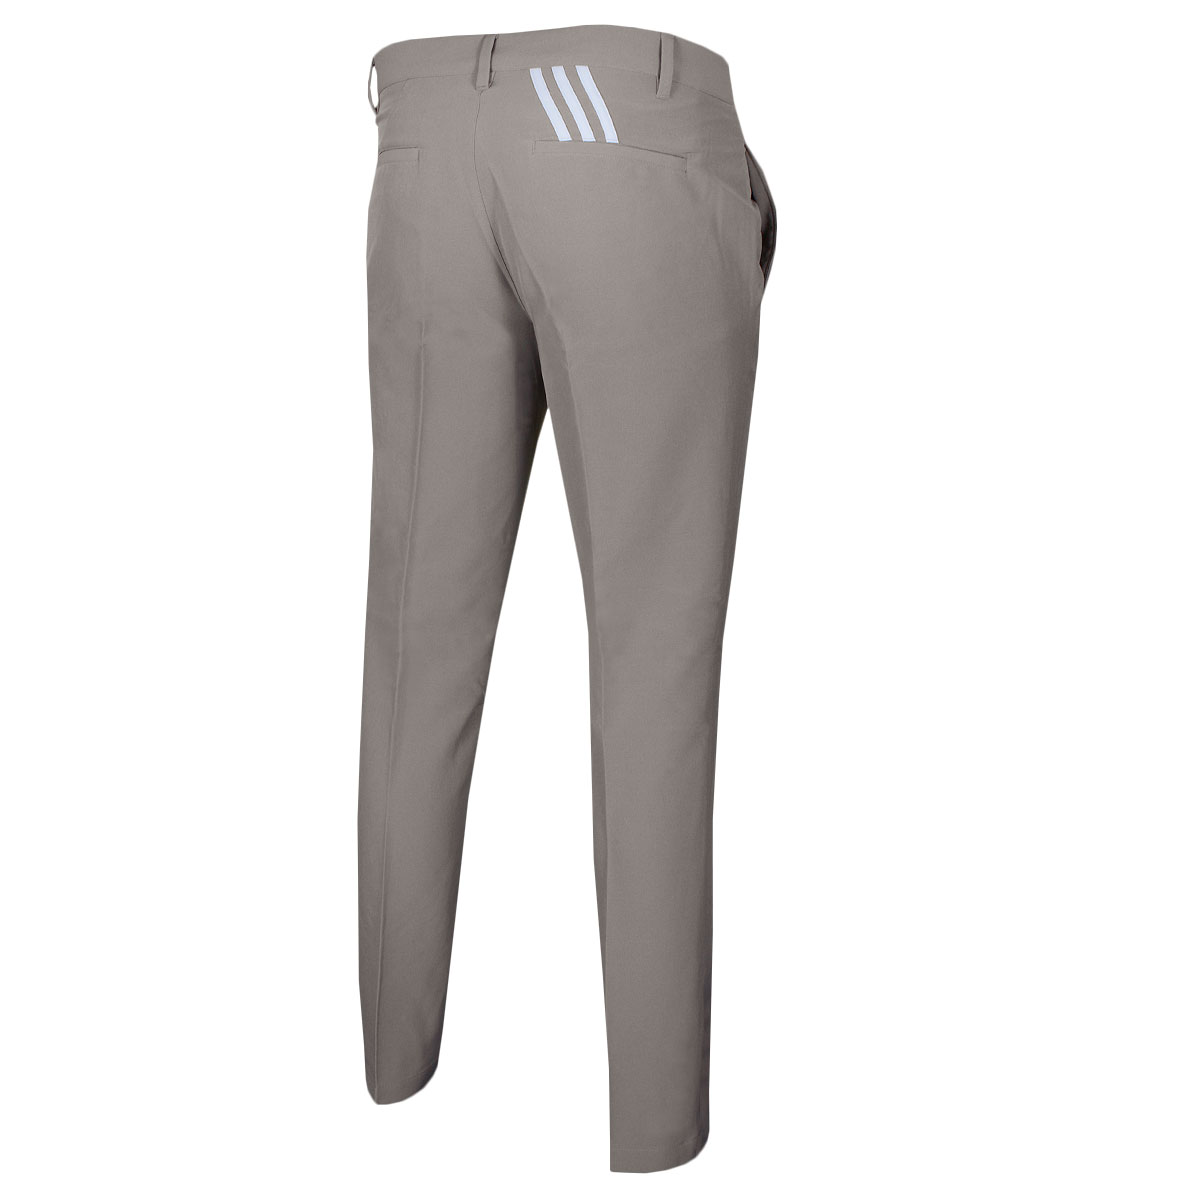 adidas-Golf-Mens-Ultimate-3-Stripes-Stretch-Pant-Trousers-44-OFF-RRP Indexbild 32